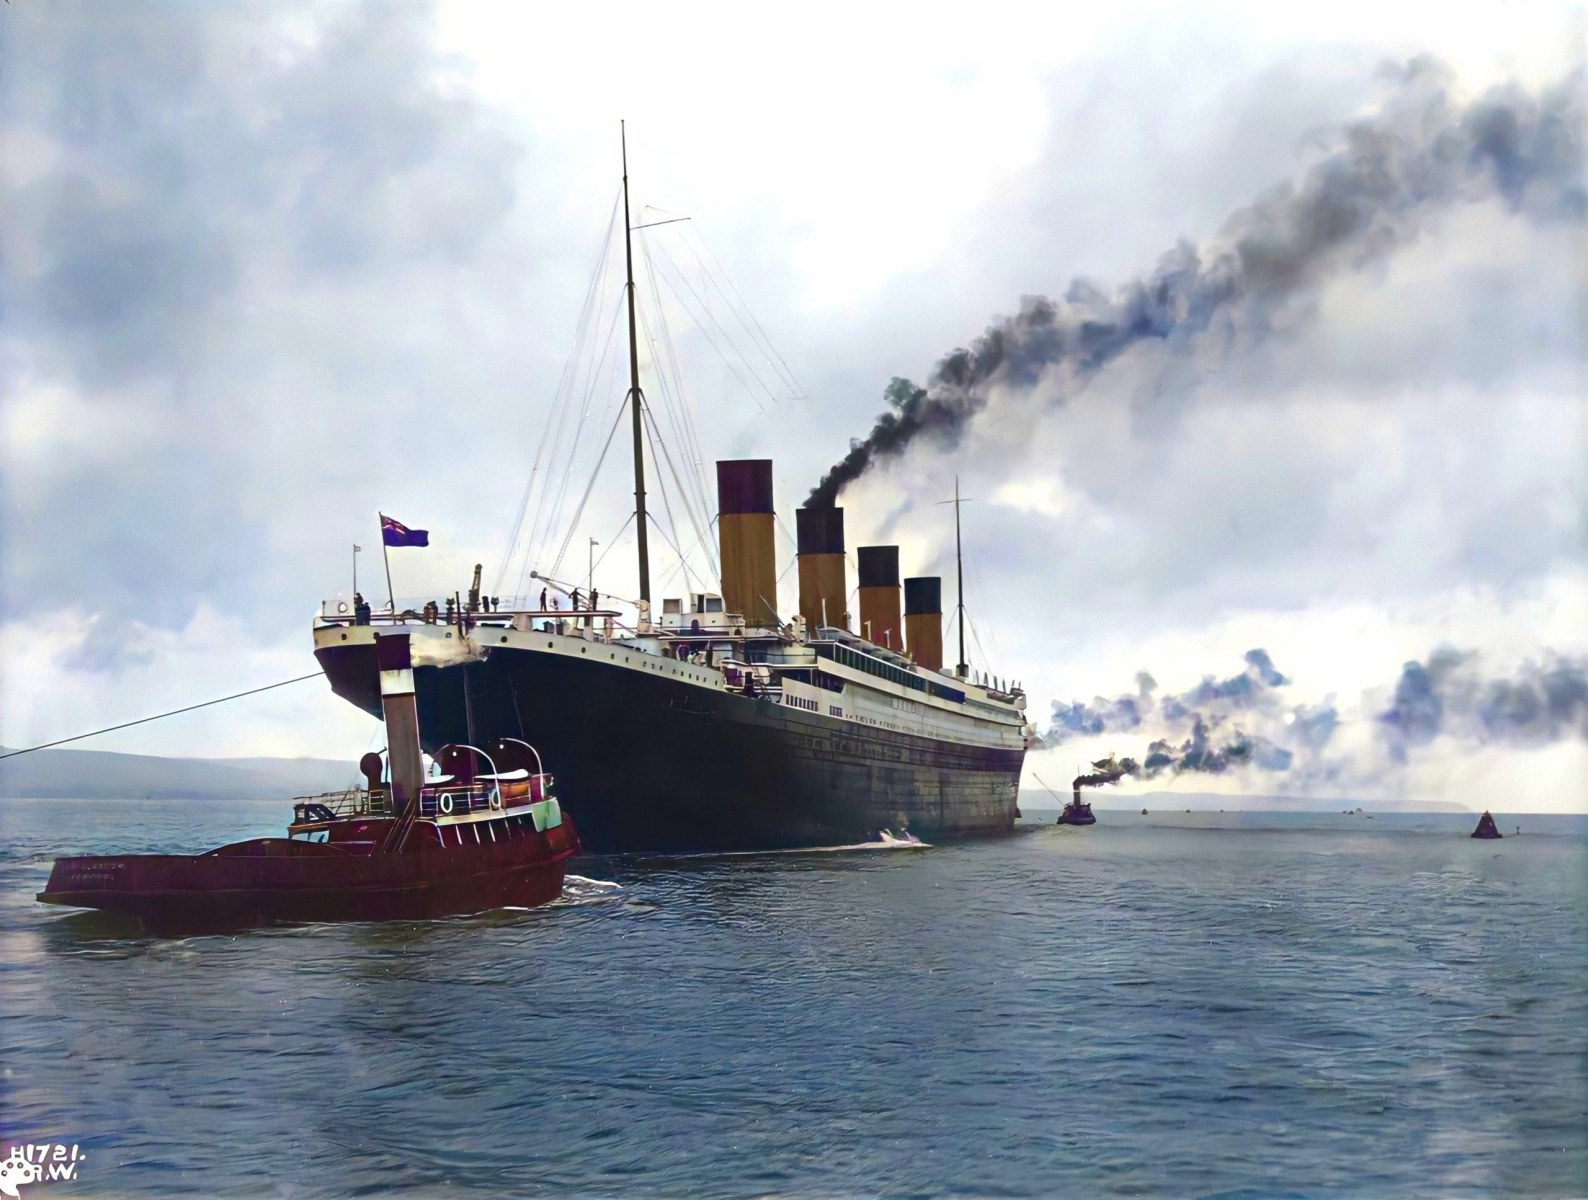 A colorized image of the Titanic by https://twitter.com/irelandincolour.